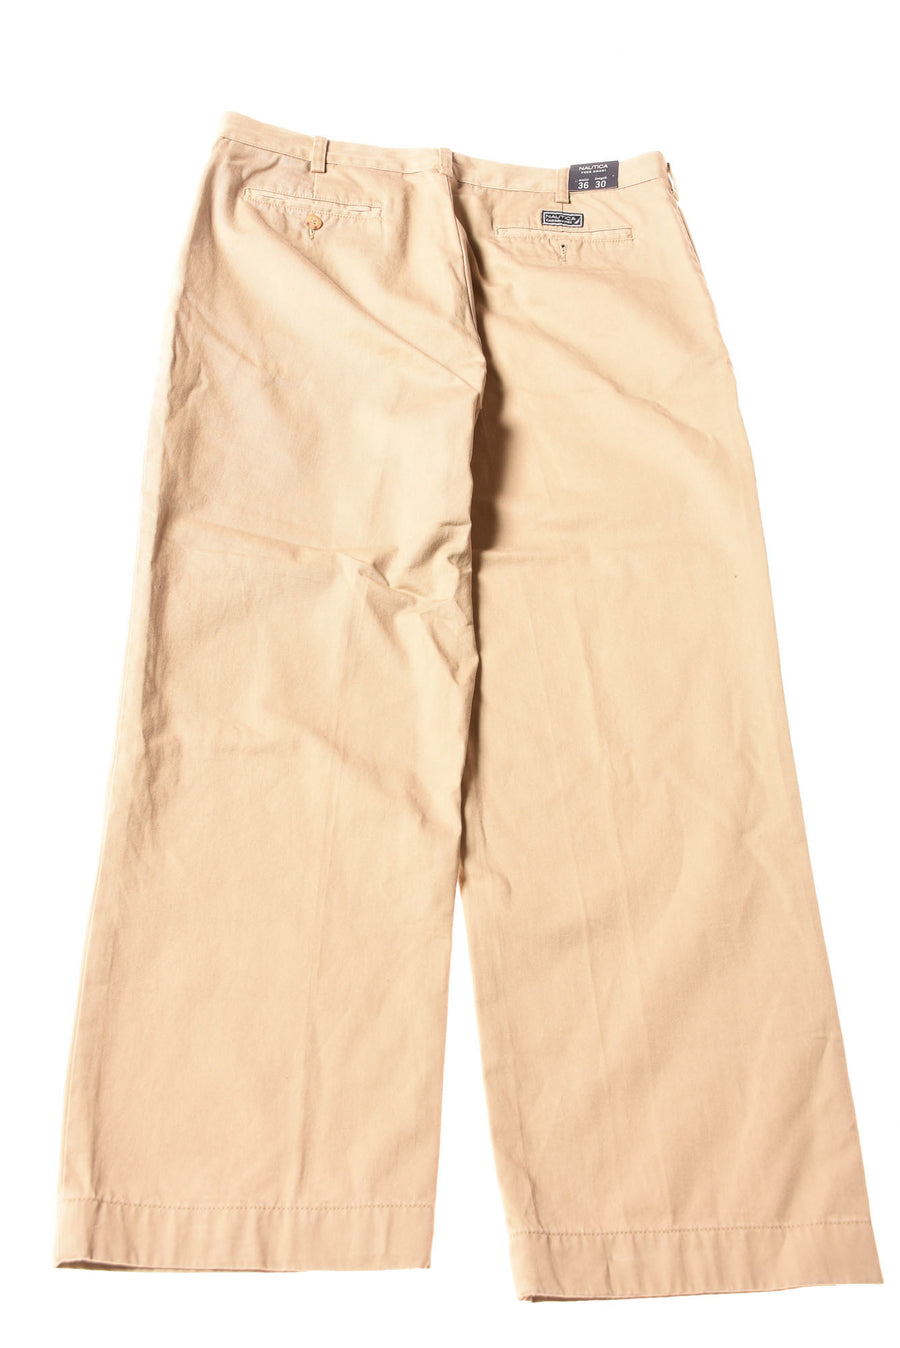 Men's Slacks By Nautica